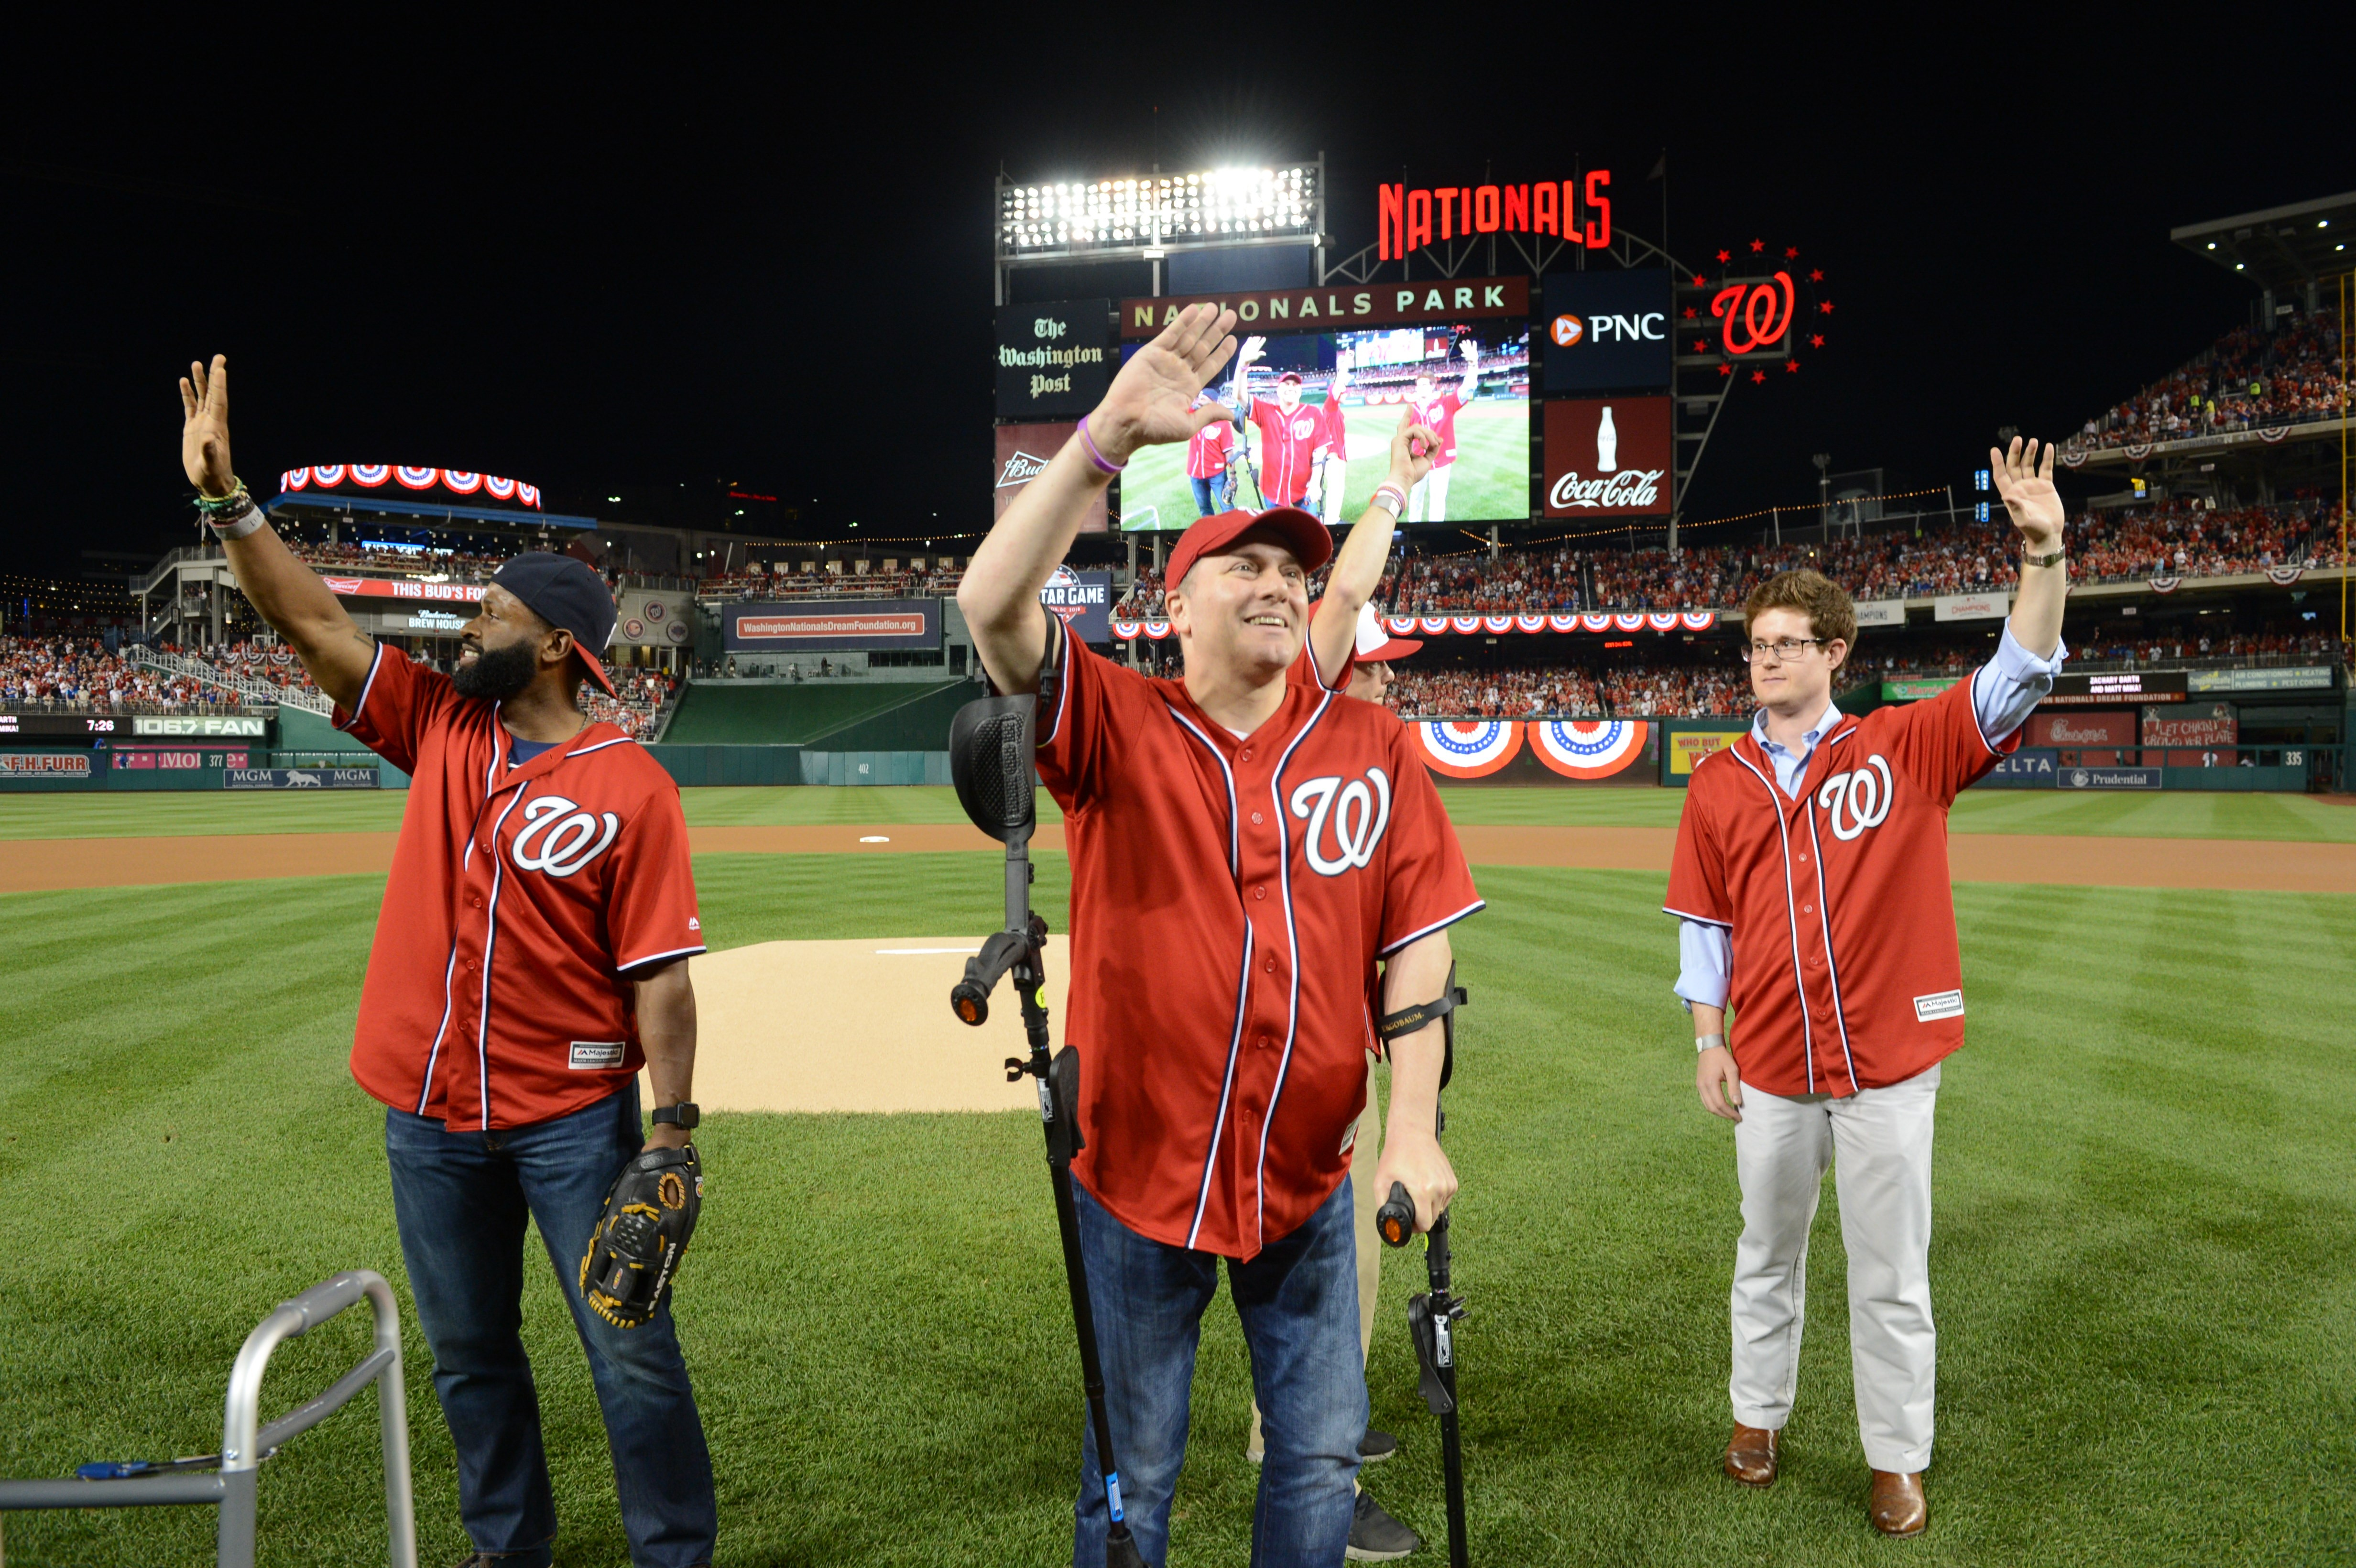 Congressman Steve Scalise throws out first pitch for playoff game (Photos courtesy of the Washington Nationals)